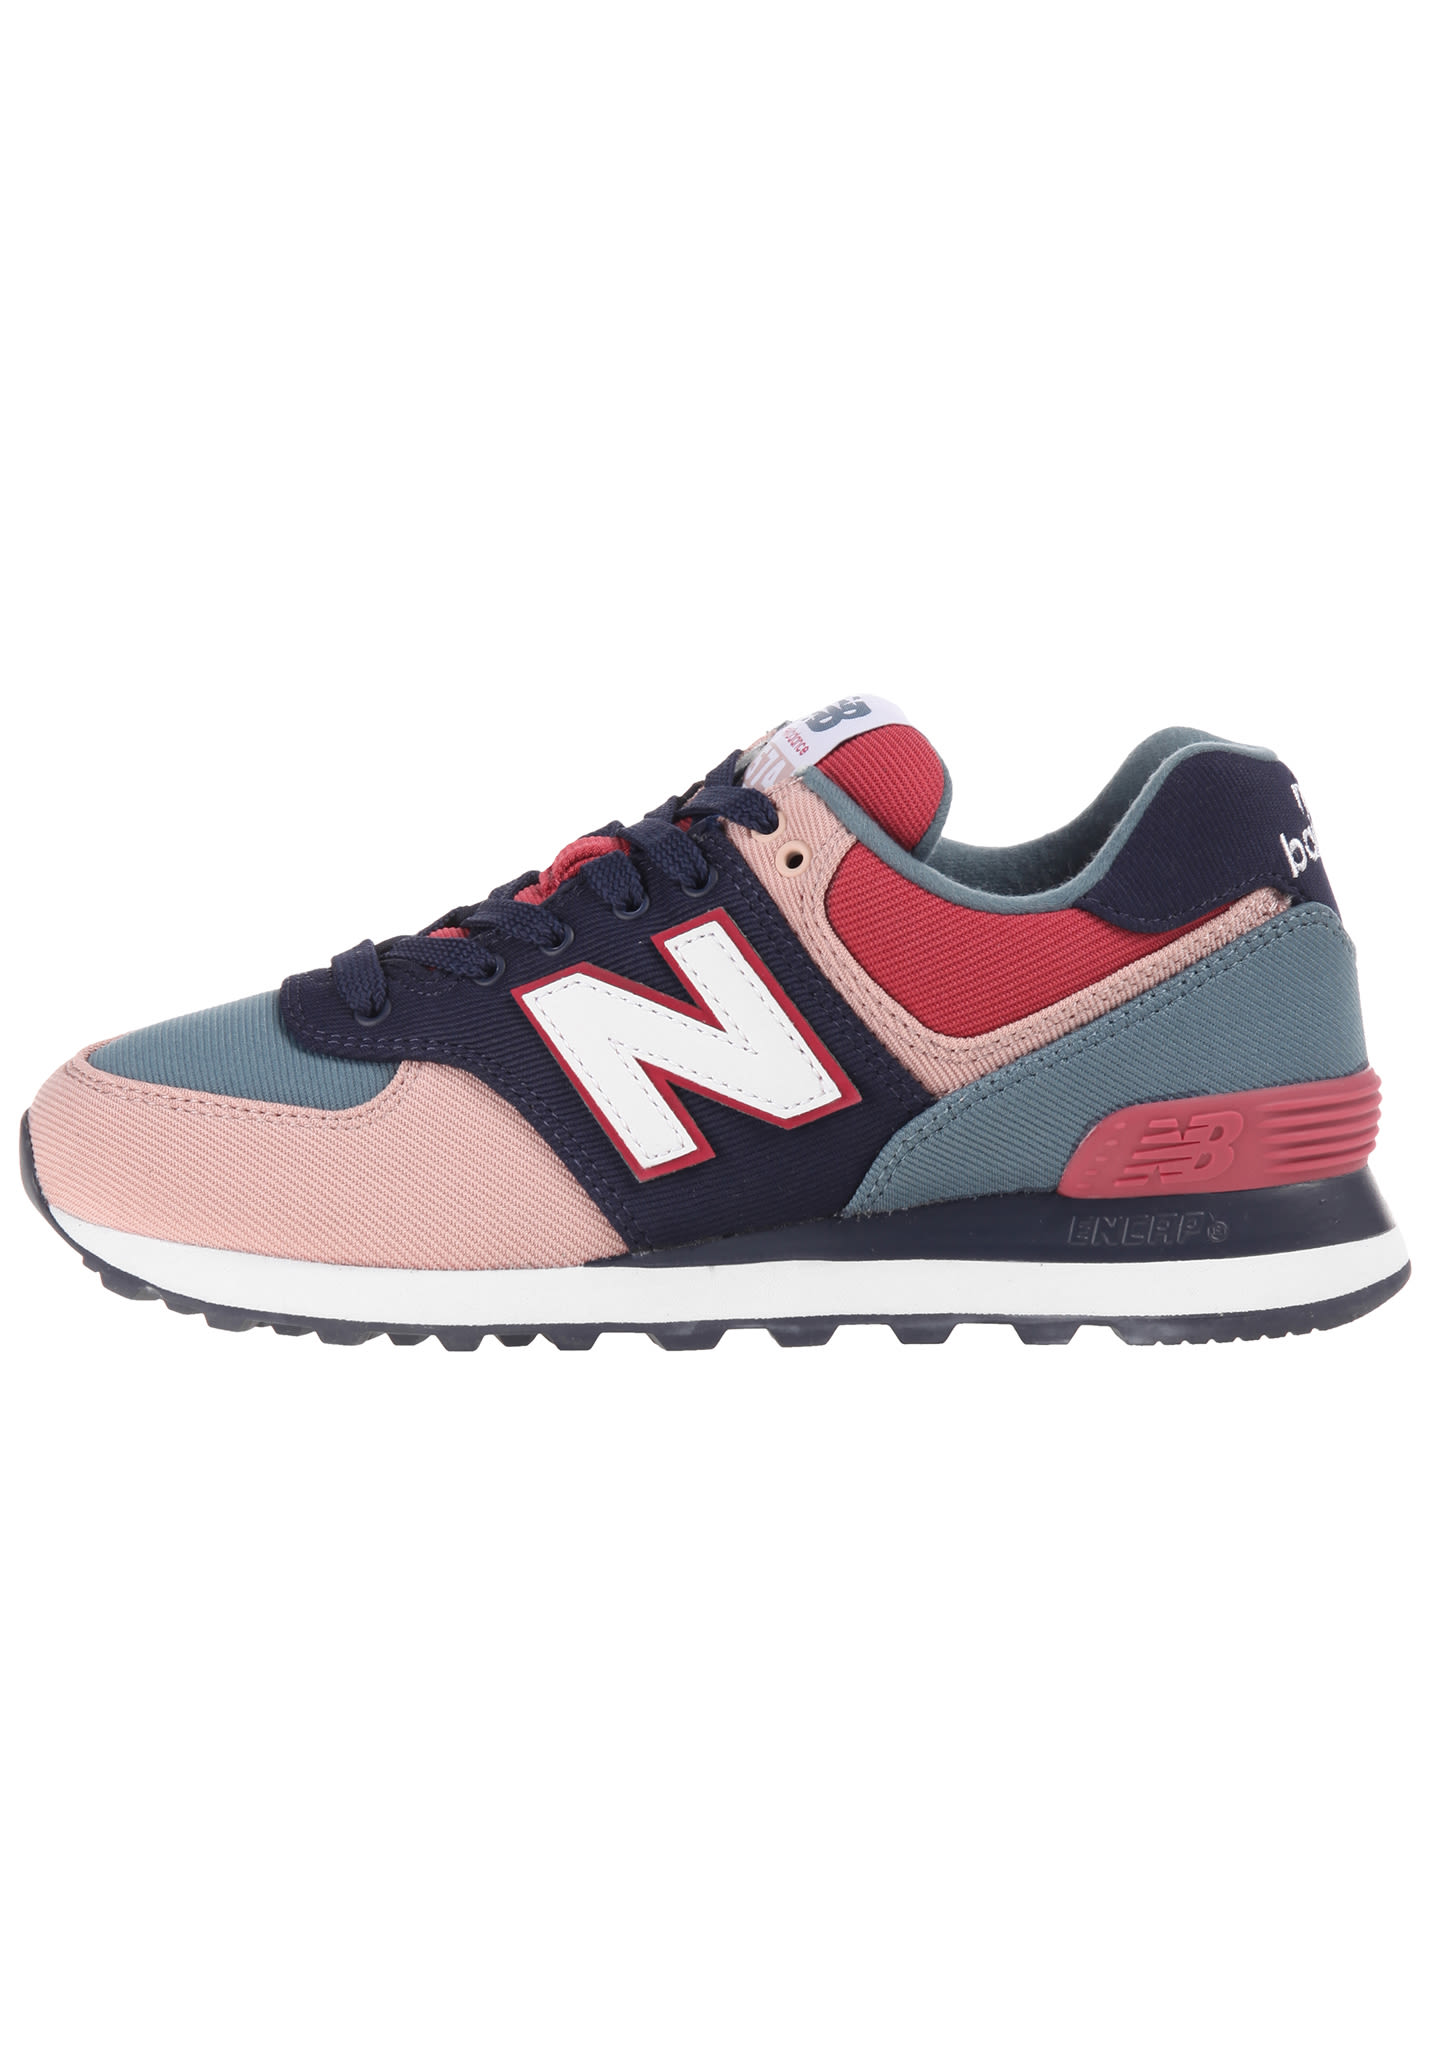 new style 11c80 983ee New Planet Sports For Wl574 Sneakers Multicolor Women Balance aFqaCUxn8